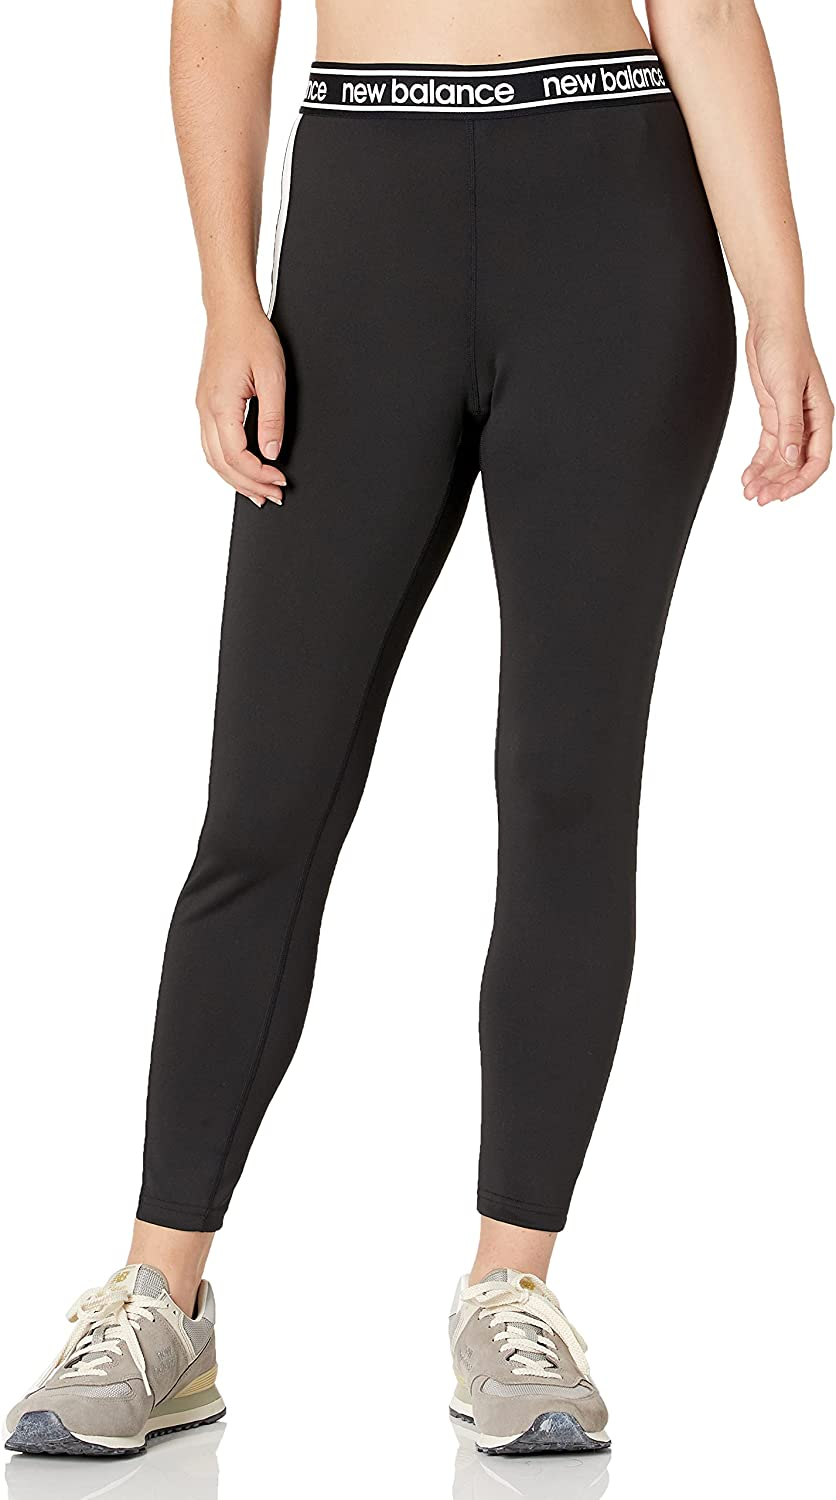 Today's Max 44% OFF only New Balance Women's Tight Relentless Colorblock